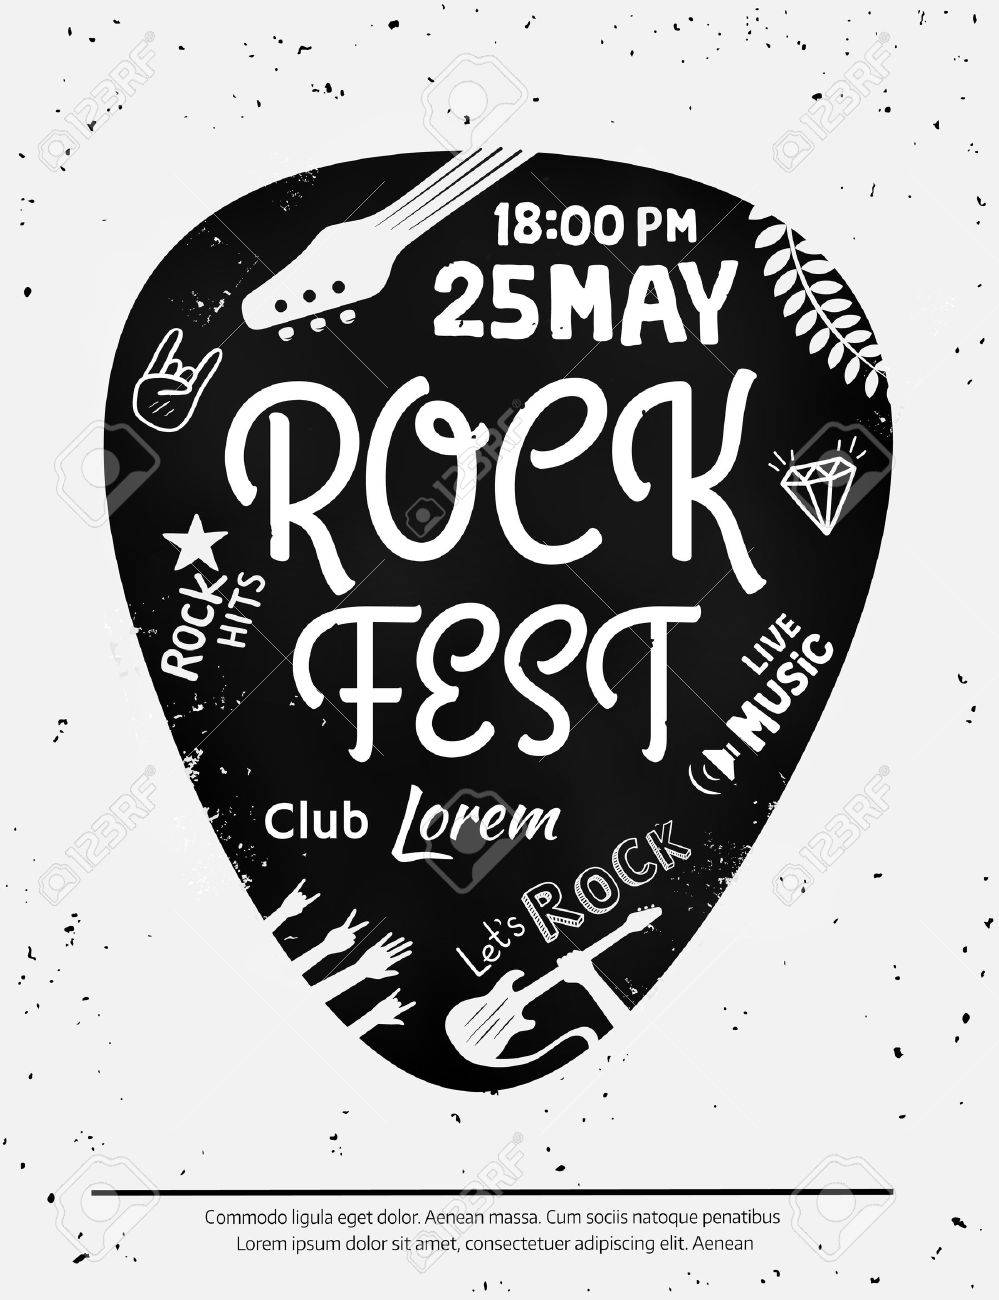 Vintage rock festival poster with Rock and Roll icons on grunge background. - 63634675